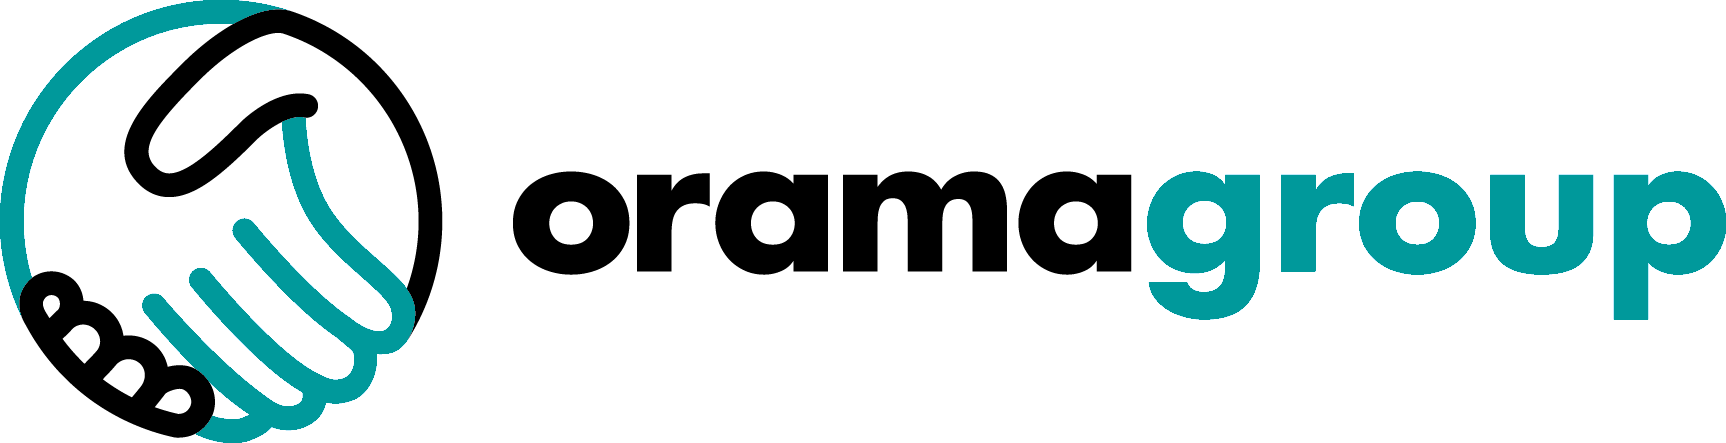 Orama Group Develop